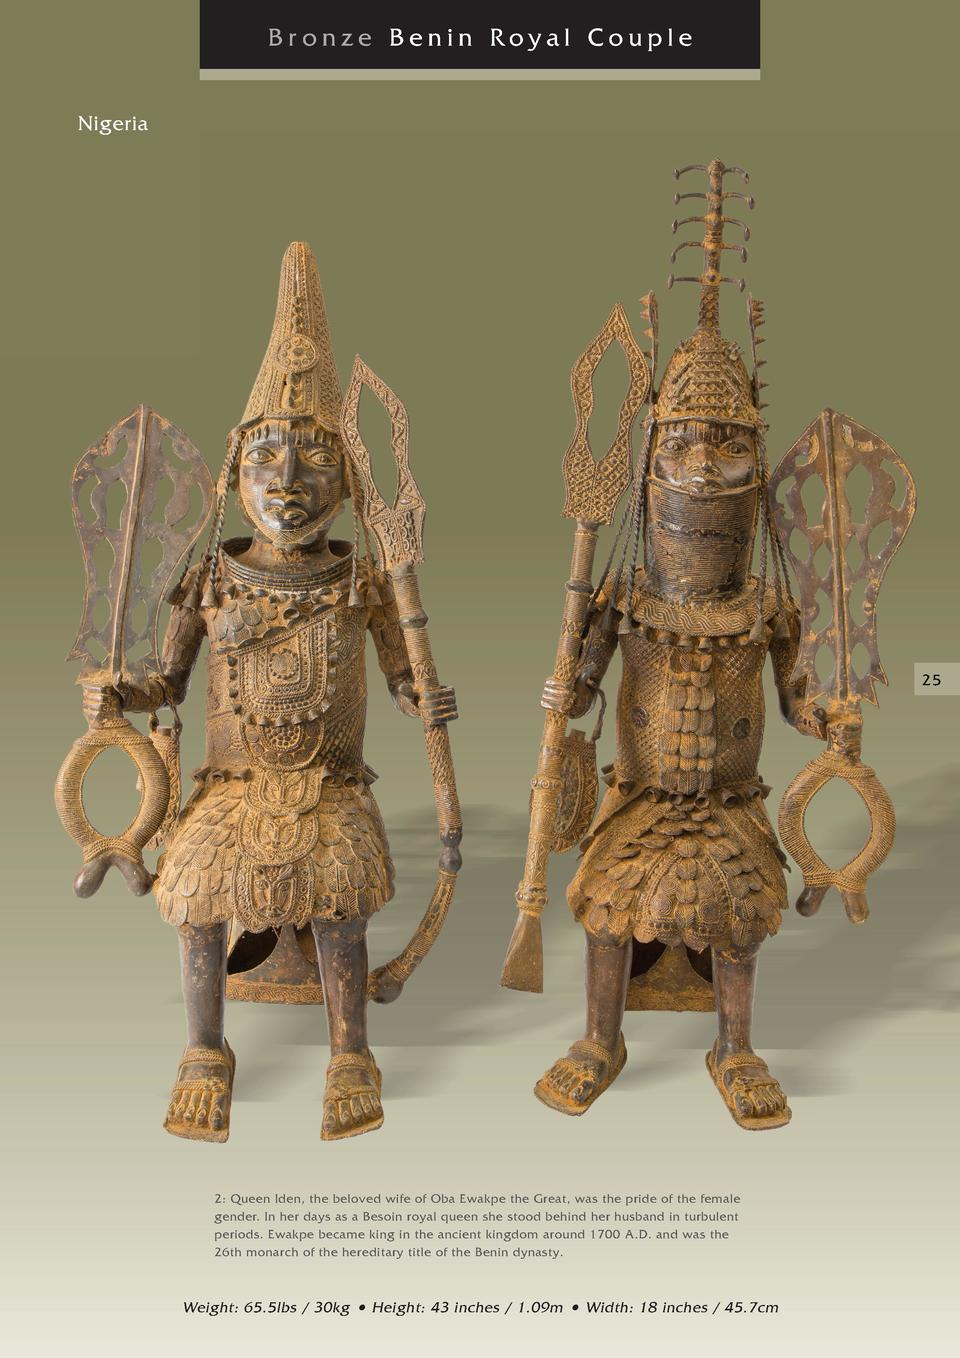 Bronze Benin Royal Couple Nigeria  25  2  Queen Iden, the beloved wife of Oba Ewakpe the Great, was the pride of the femal...